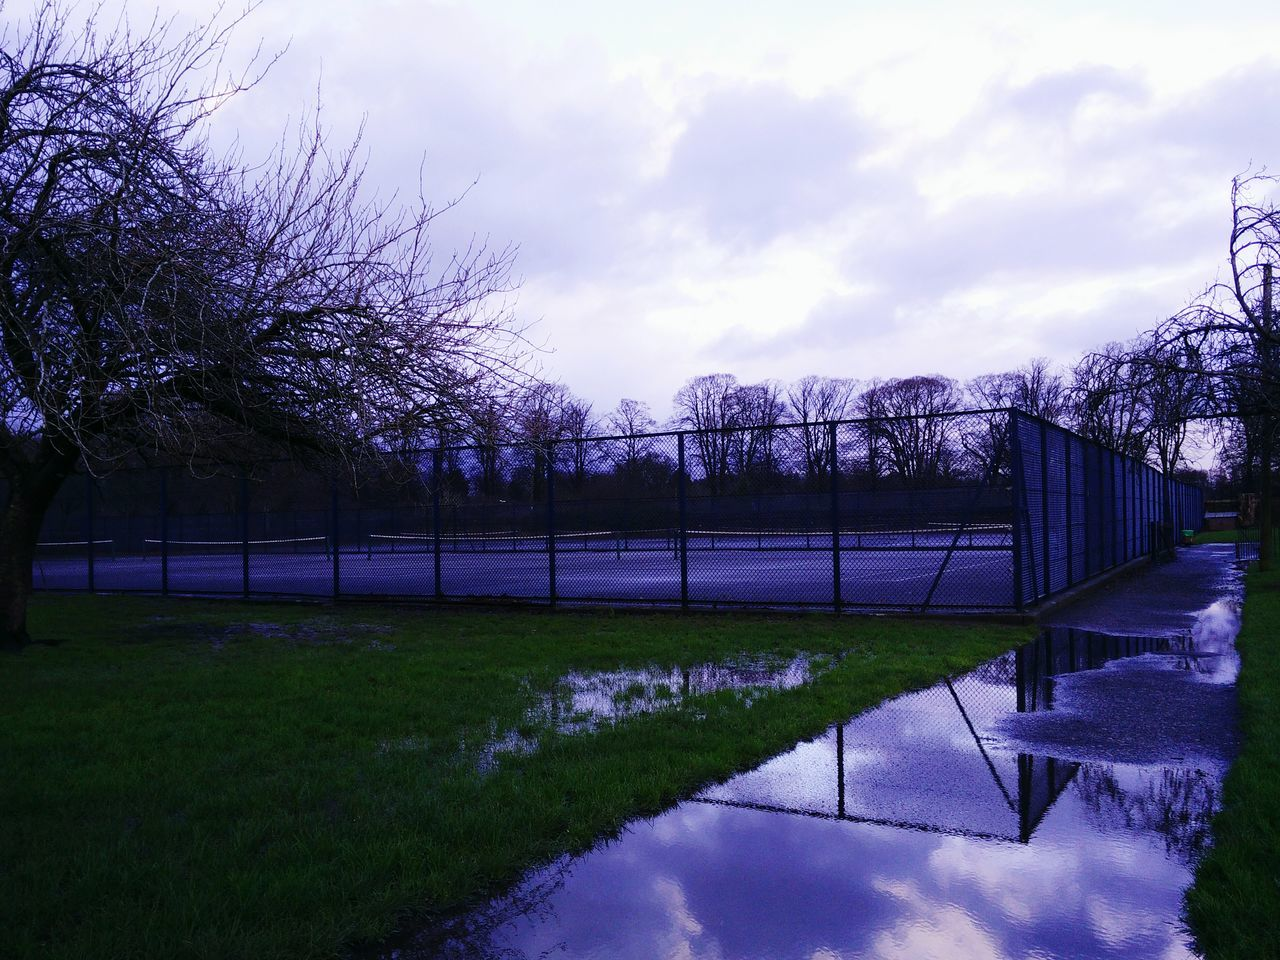 Puddle On Footpath By Playing Field Against Sky